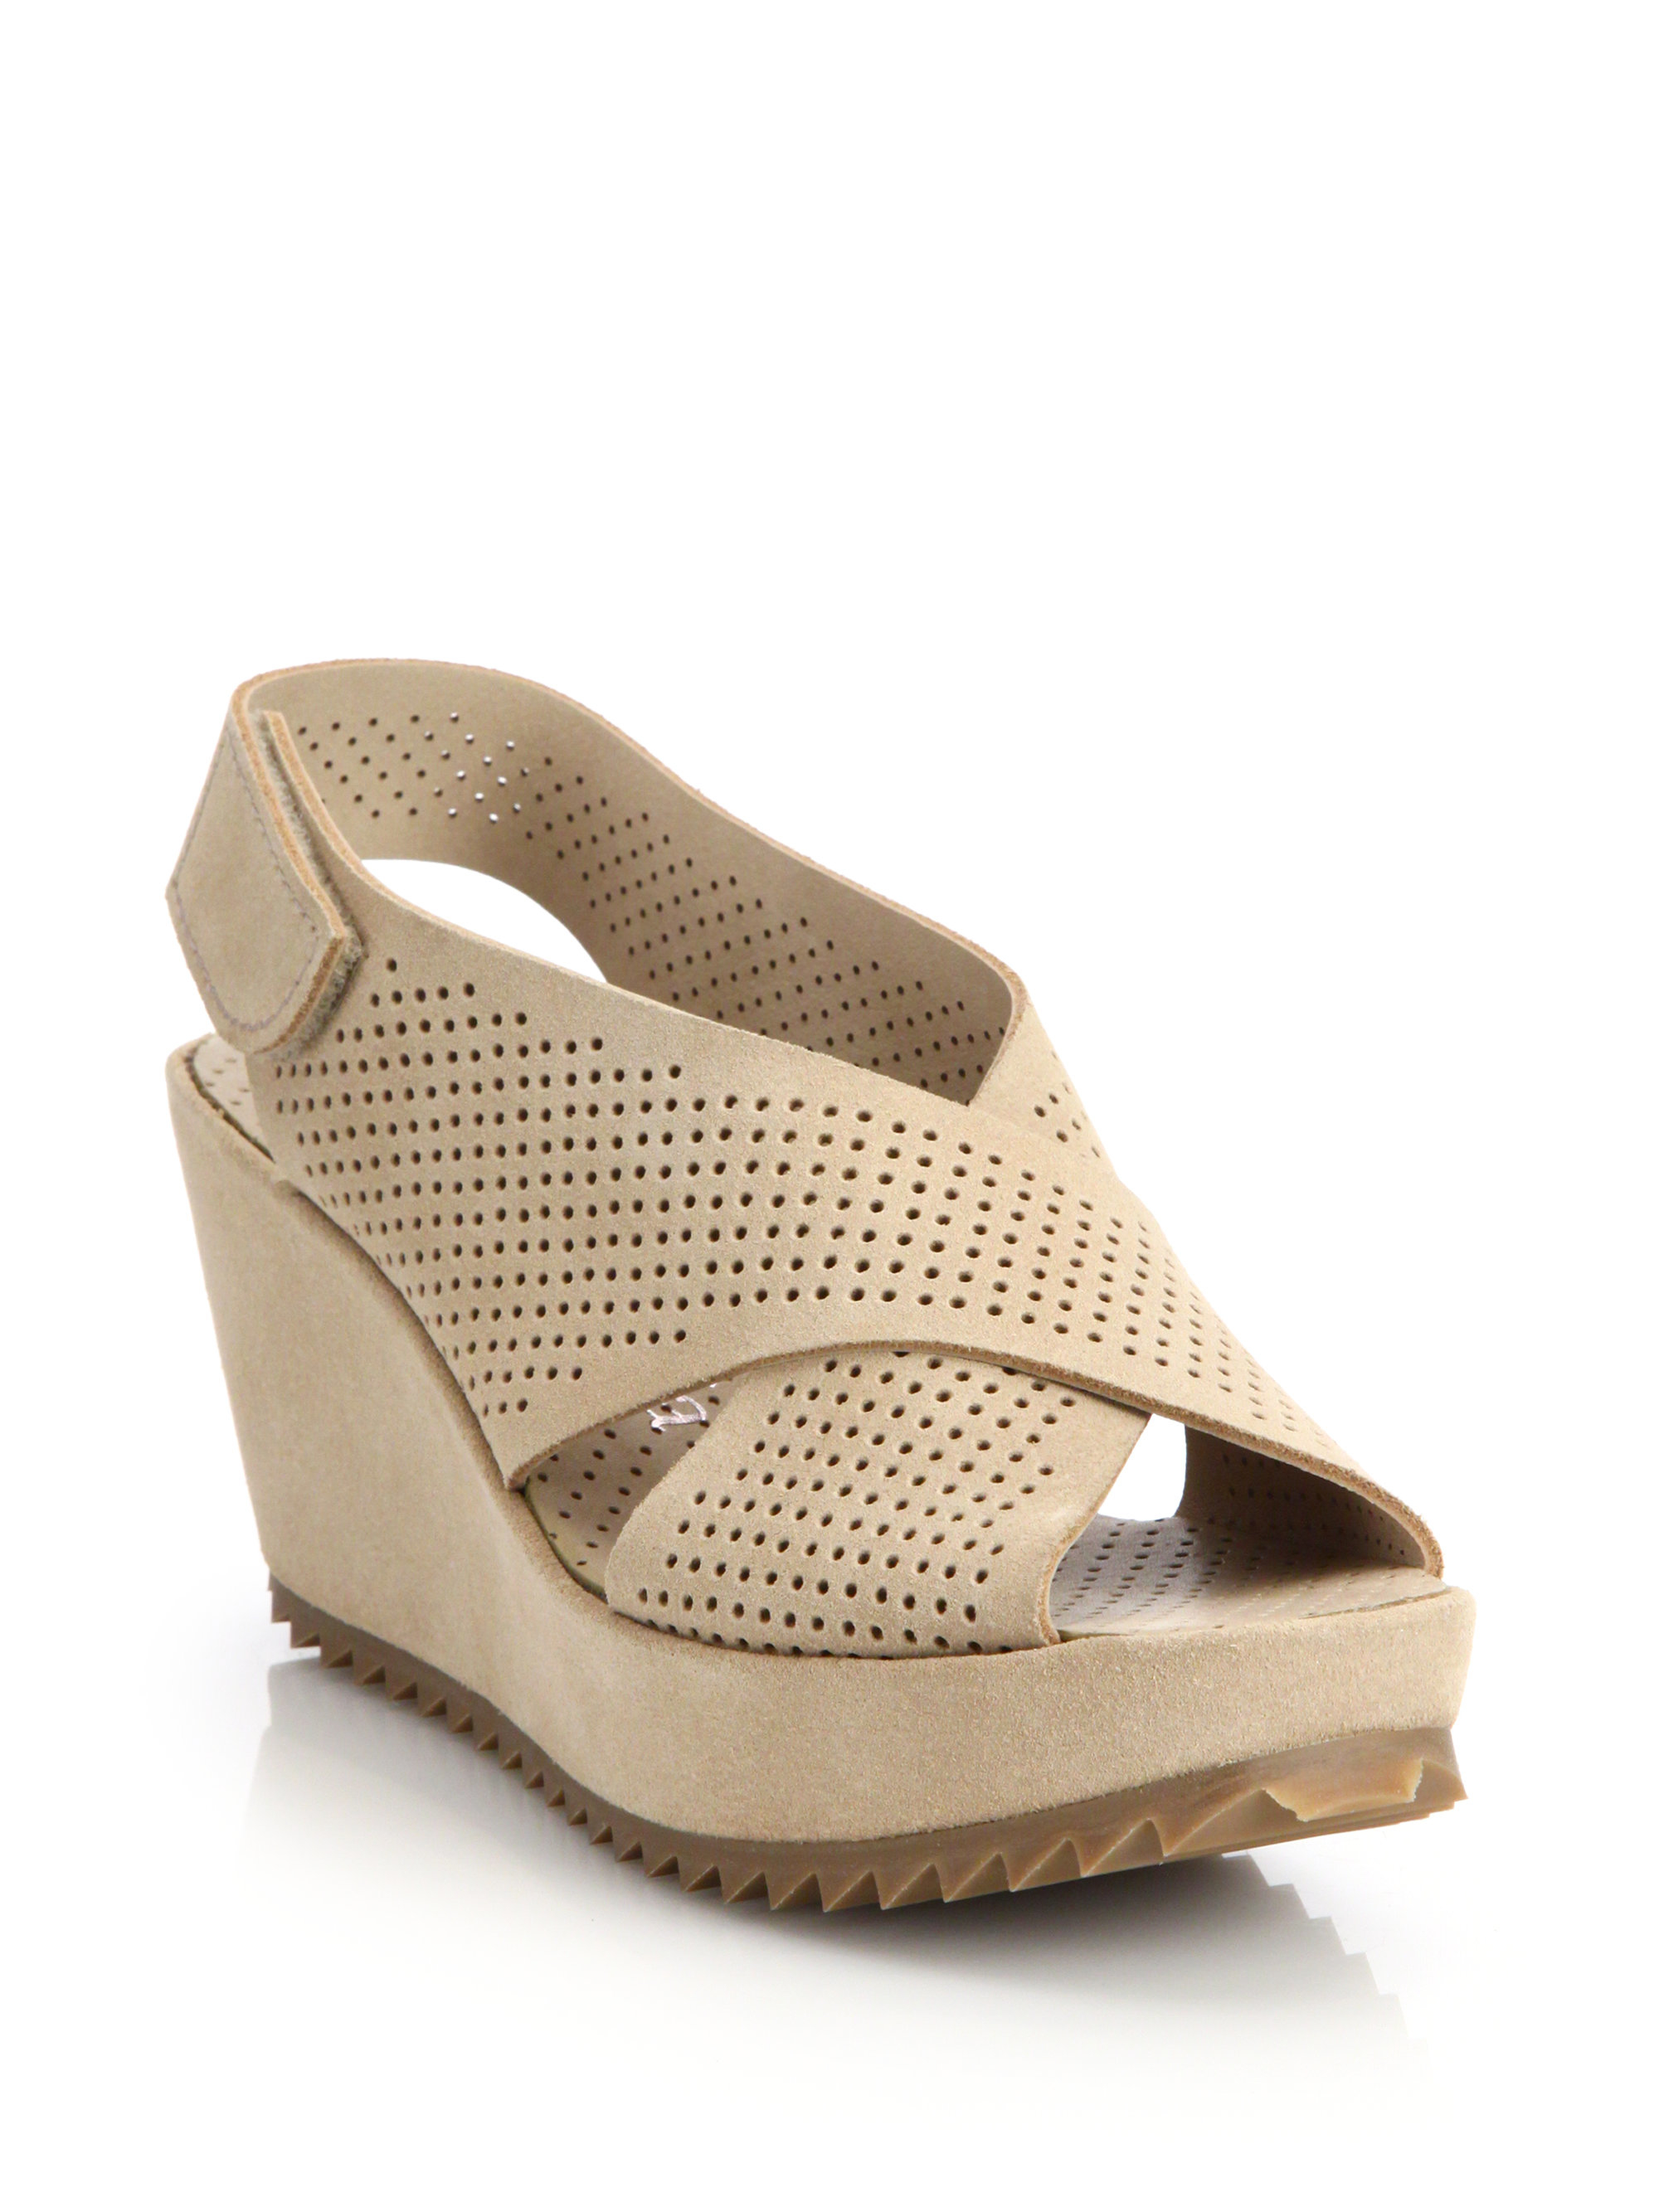 Pedro Garcia Suede Perforated Sandals outlet store cheap online largest supplier great deals for sale discounts cheap price VukMJT